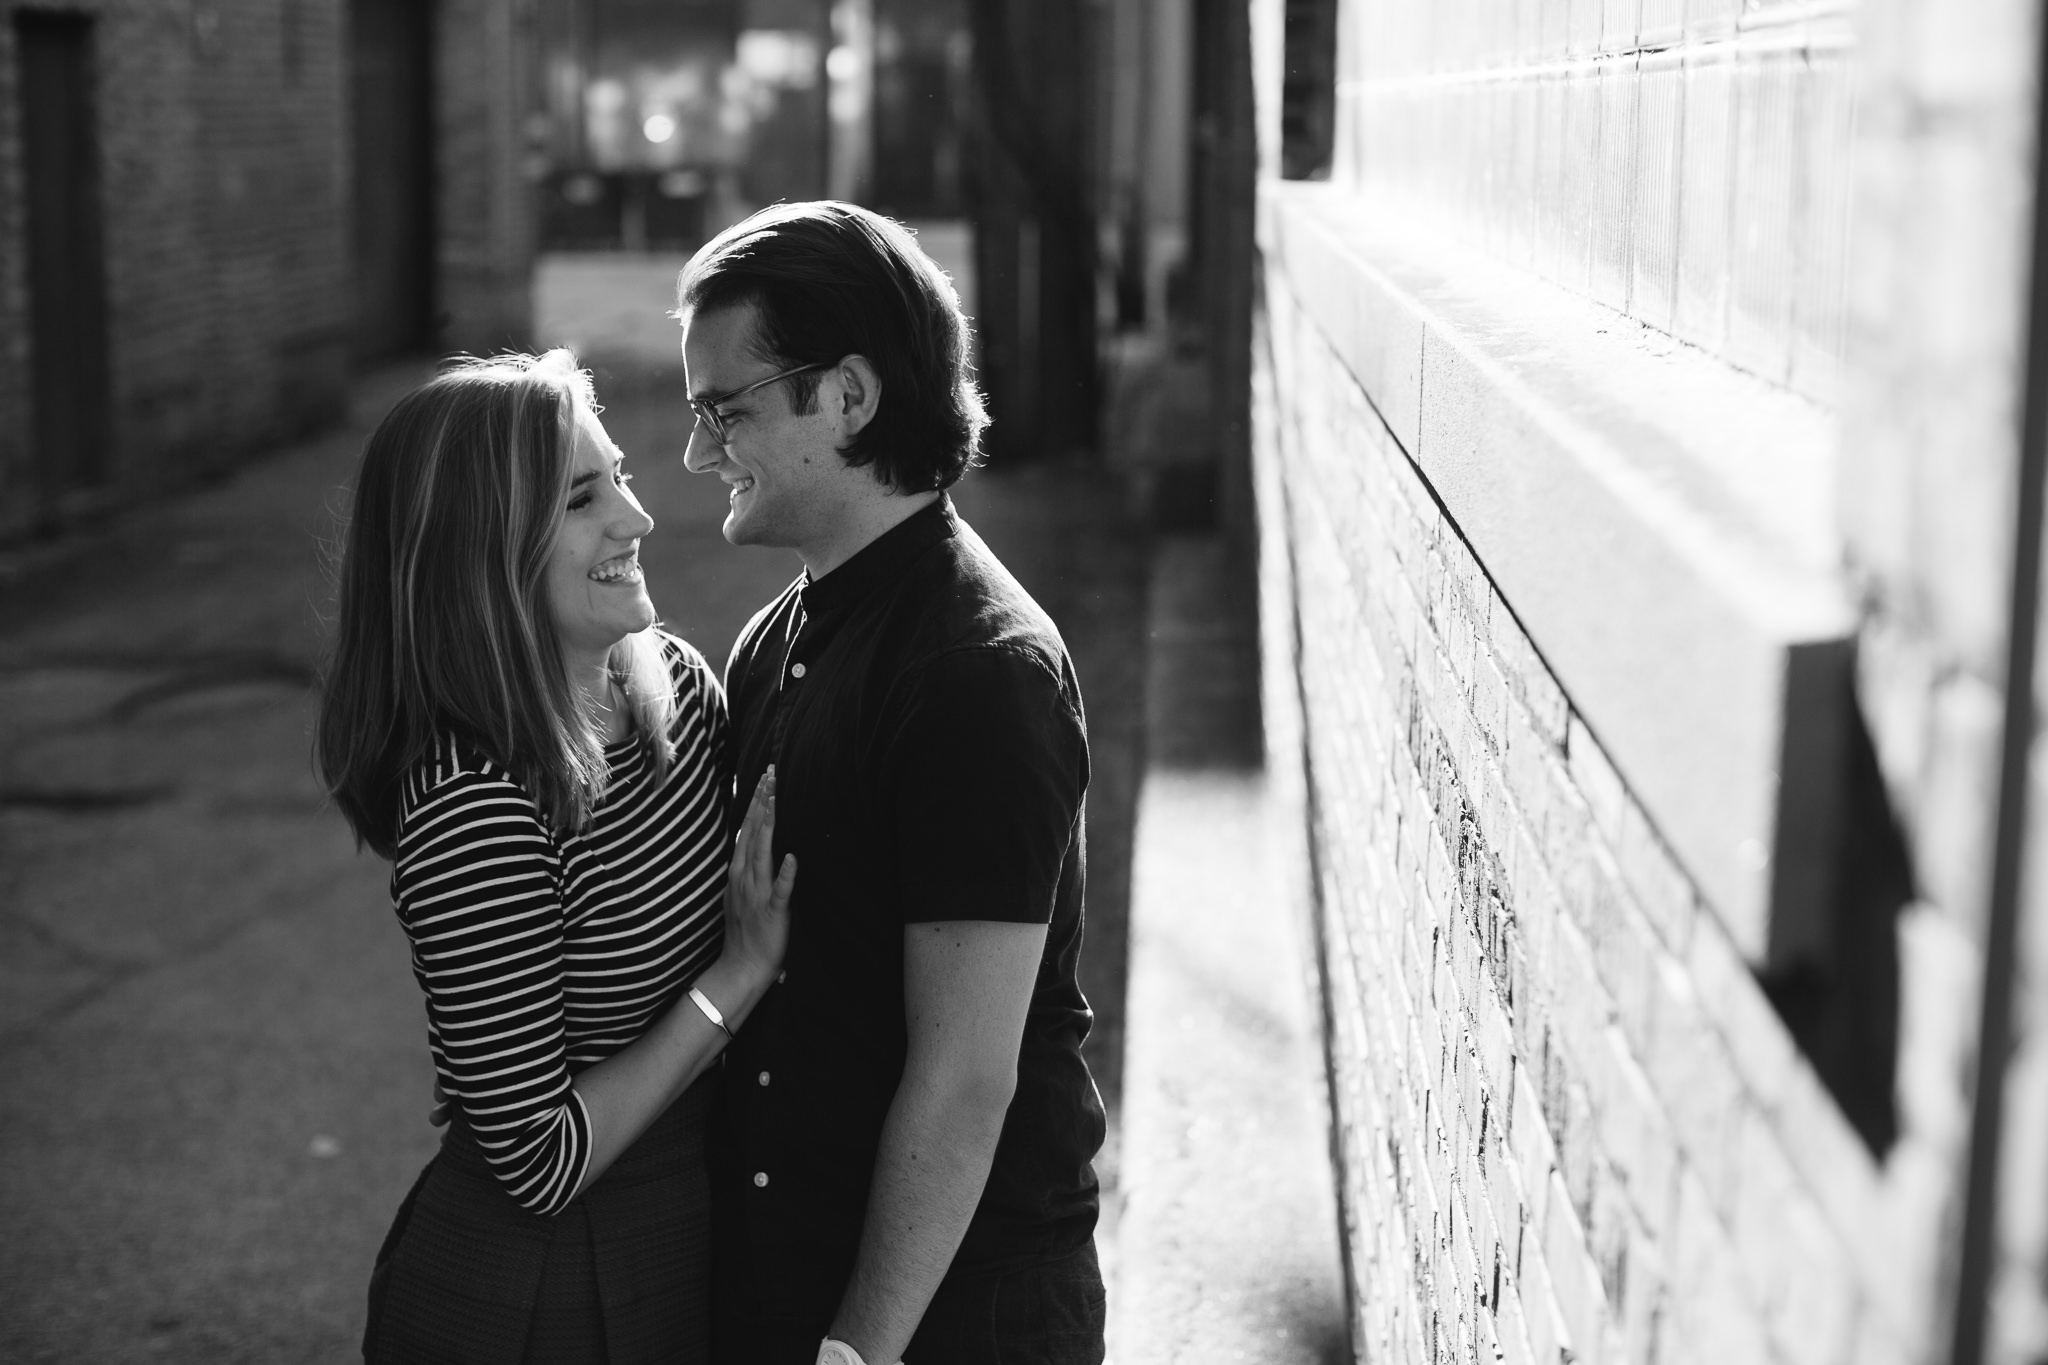 Black and White Alley pictures for engagement photo shoot